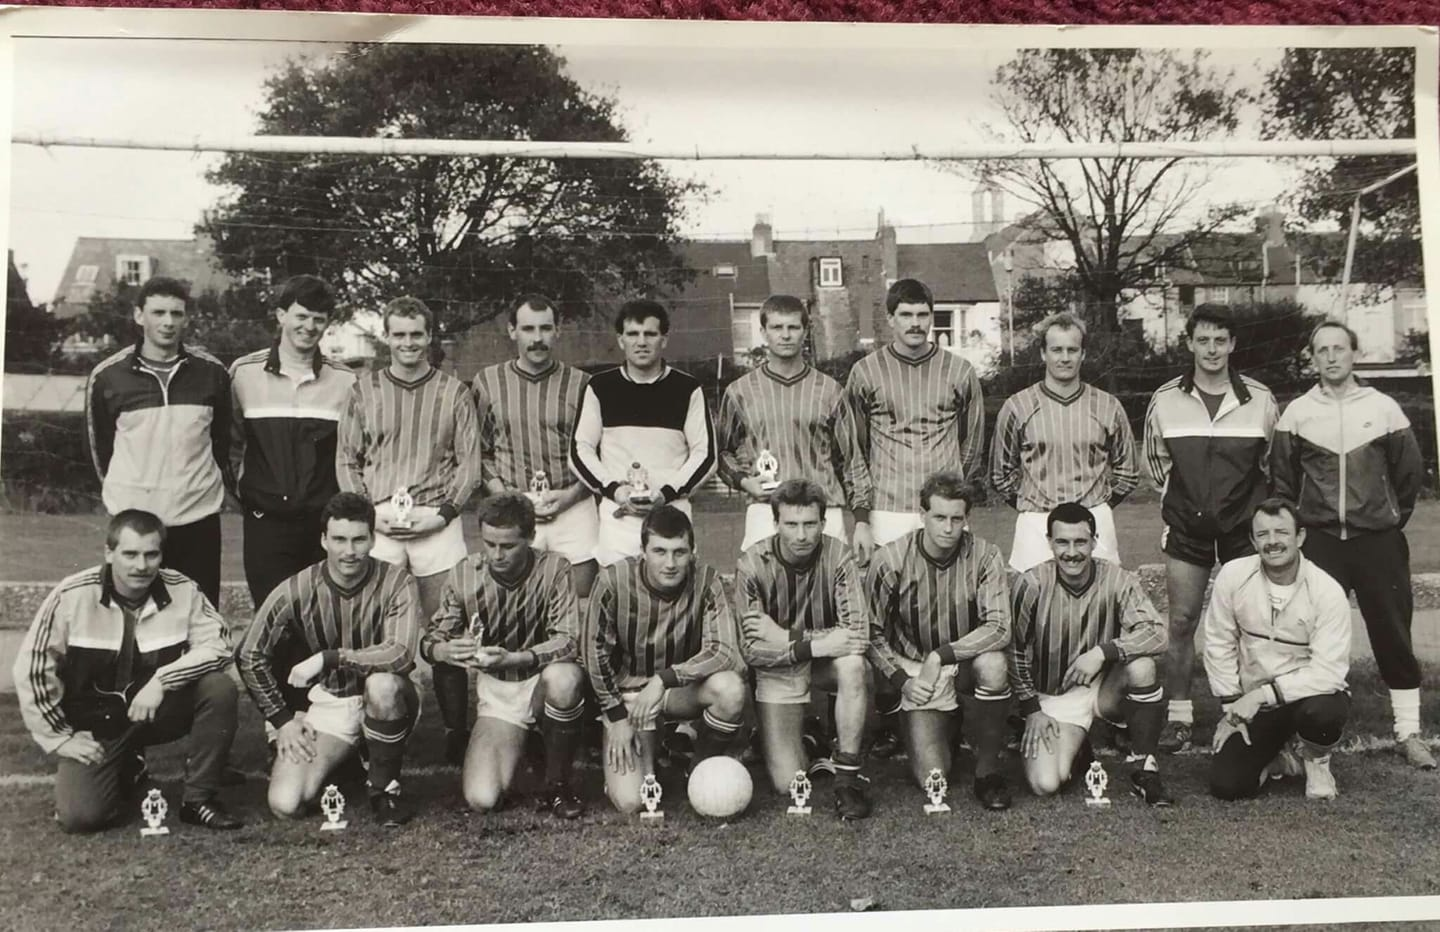 1986 Tunney Cup runners up 42Cdo RM